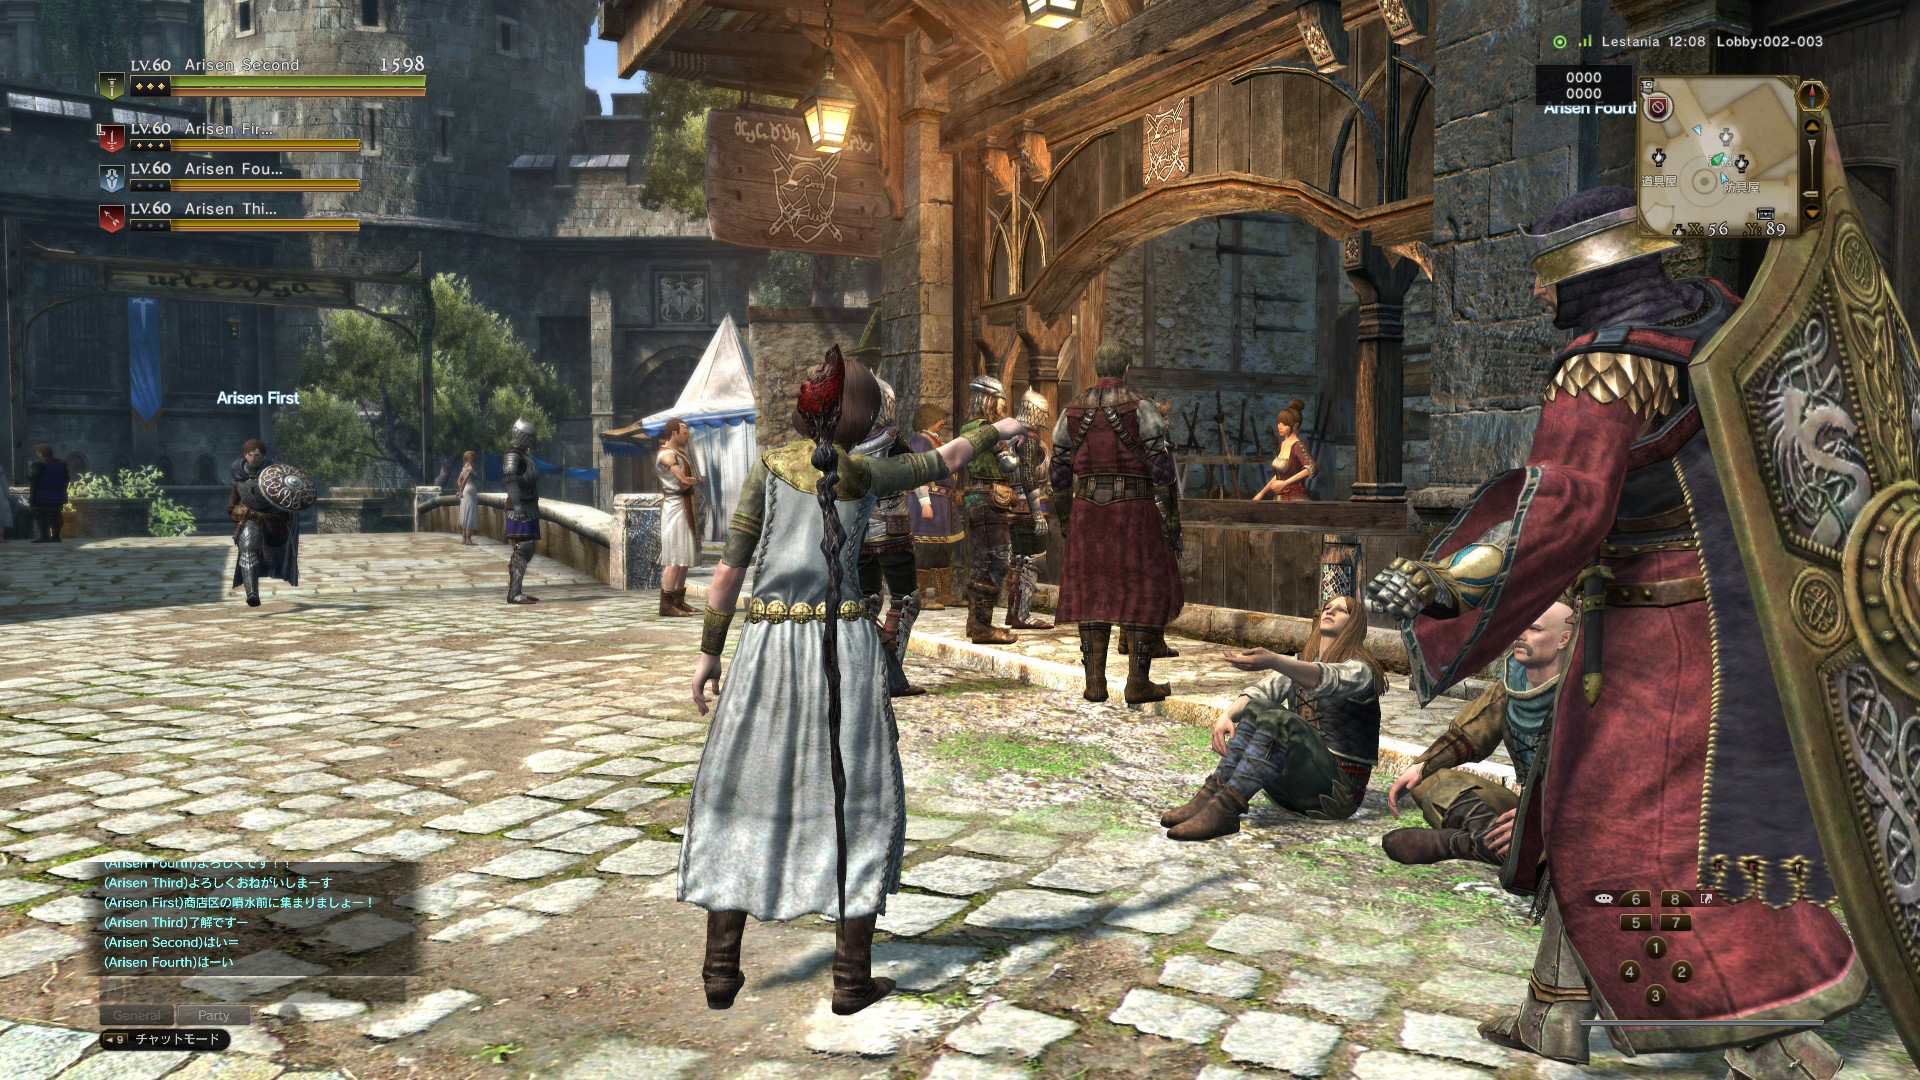 Dragons-Dogma-Online-Town-Lobby-Screenshot-4